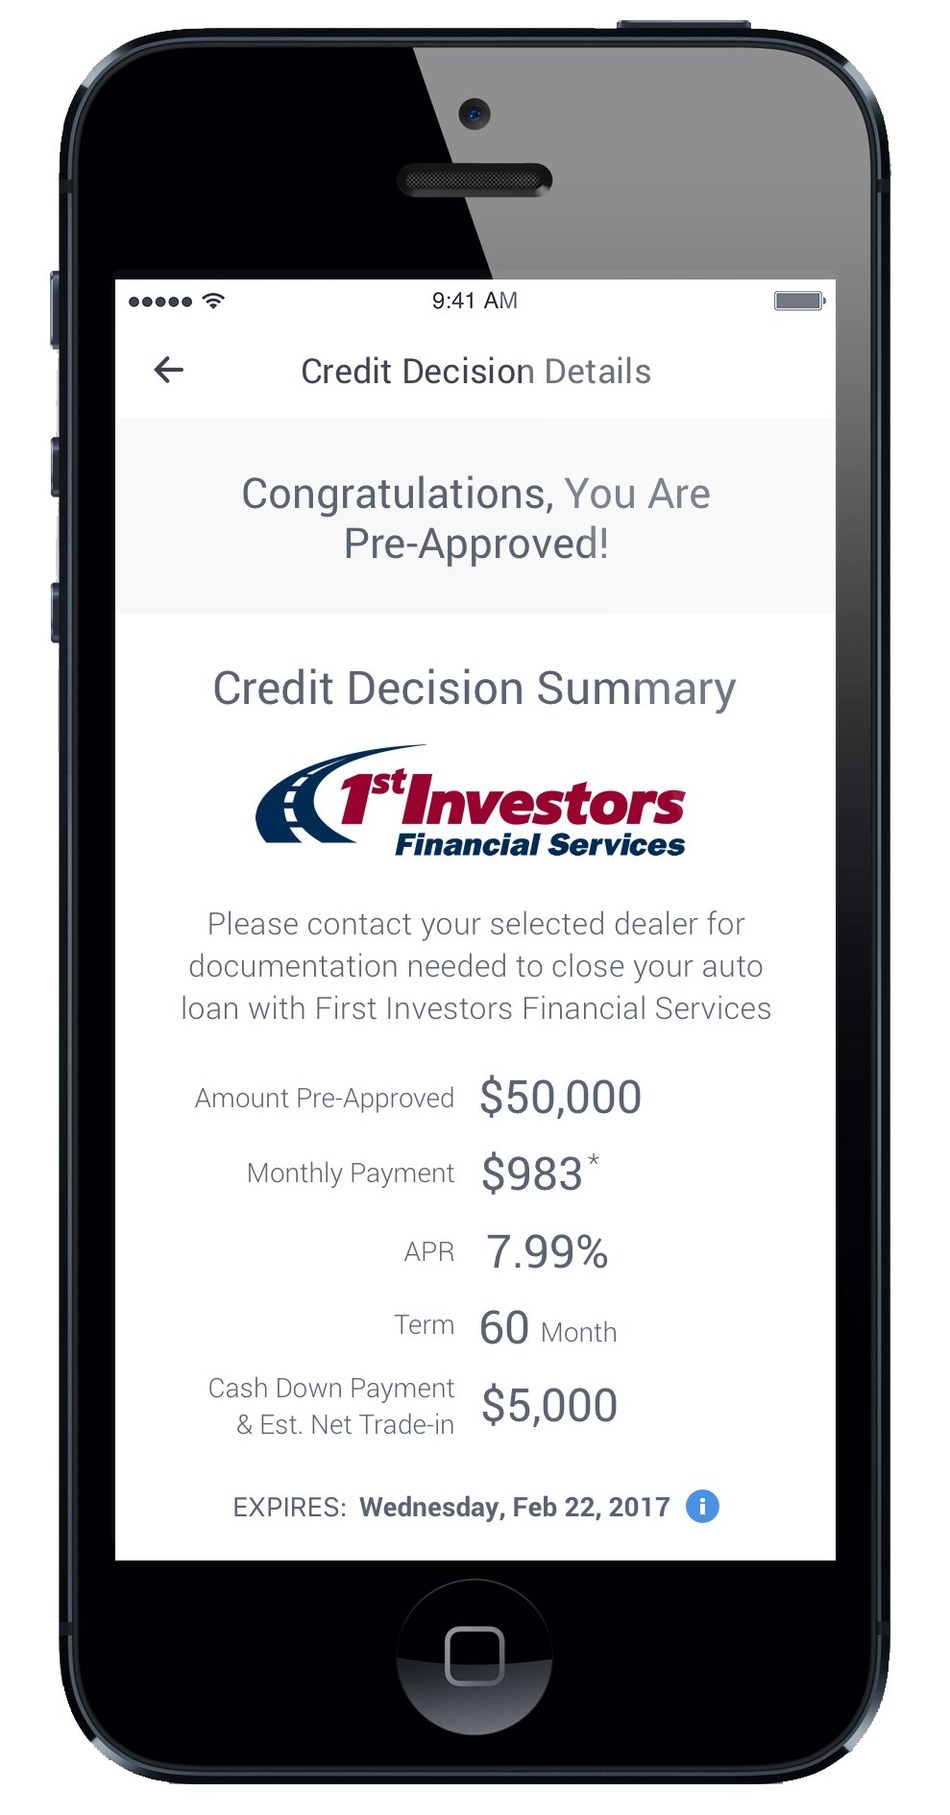 Finance your next car through First Investors Financial Services without any hassle